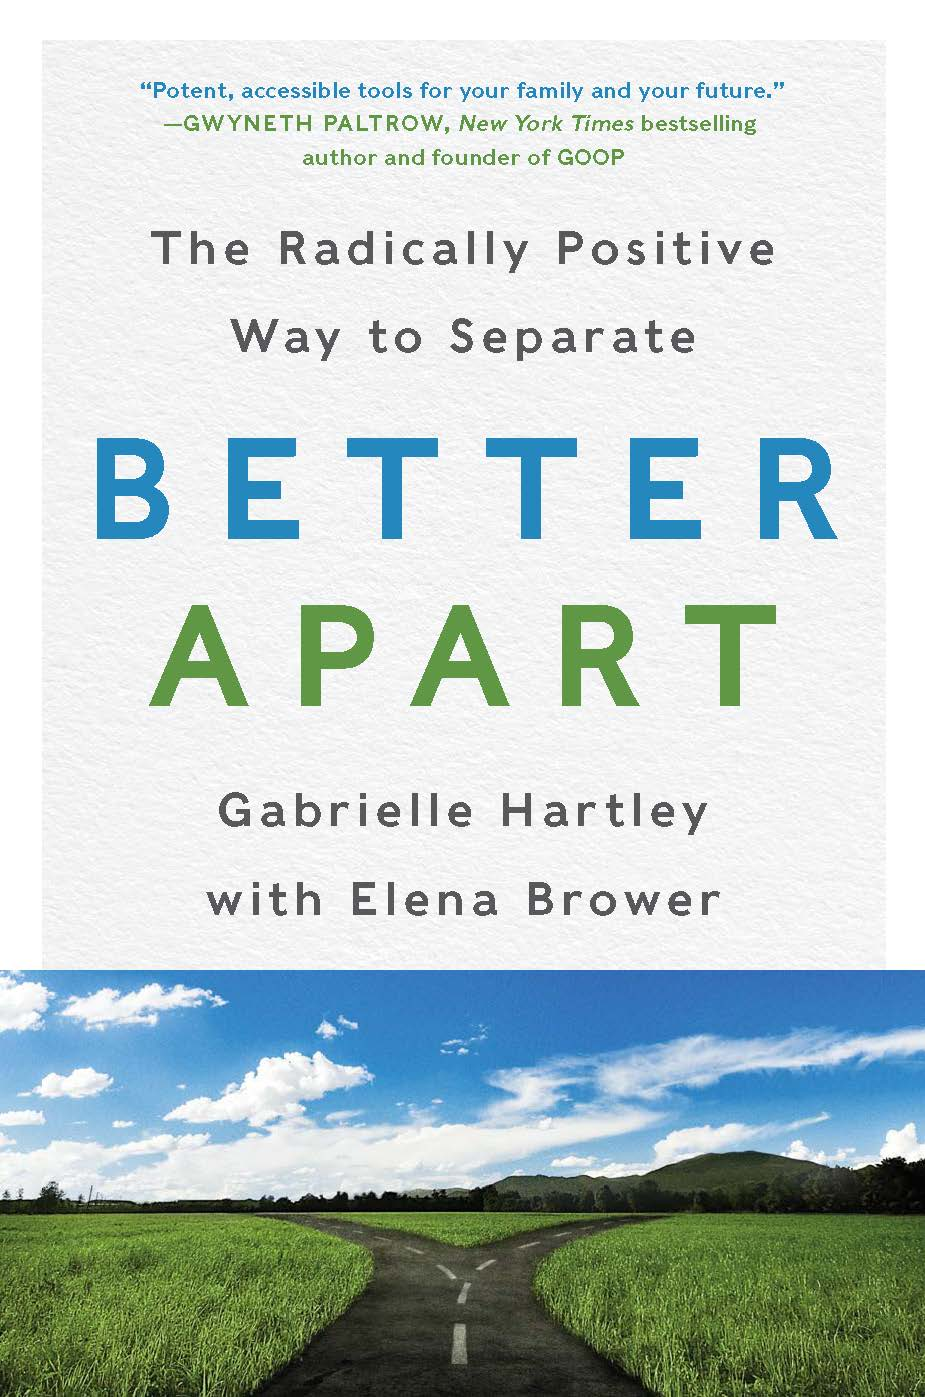 """When going through a tough experience or big transition in your life, how do you navigate the chaos and reach the other side better than you were before? - My friend, Gabrielle Hartley wrote an amazing book, Better Apart: the radically positive way to separate. It combines legal wisdom with many """"potent accessible tools"""" (as described by Gwyneth Paltrow) to help you change your experience and your future when going through a challenging experience such as divorce.As a child of divorced parents myself, I'm so glad to be speaking with Gabrielle about her book and even more excited to share how accessible these tools are for anyone in life.Gabrielle's 5 tools are:PatienceRespectClarityPeaceForgivenessEach of these tools is designed to help you create a new pathway during a break-up (for my readers context, perhaps from an old job) and in life.Have a listen to the first audio interview I've ever done (eek!) to learn more:"""